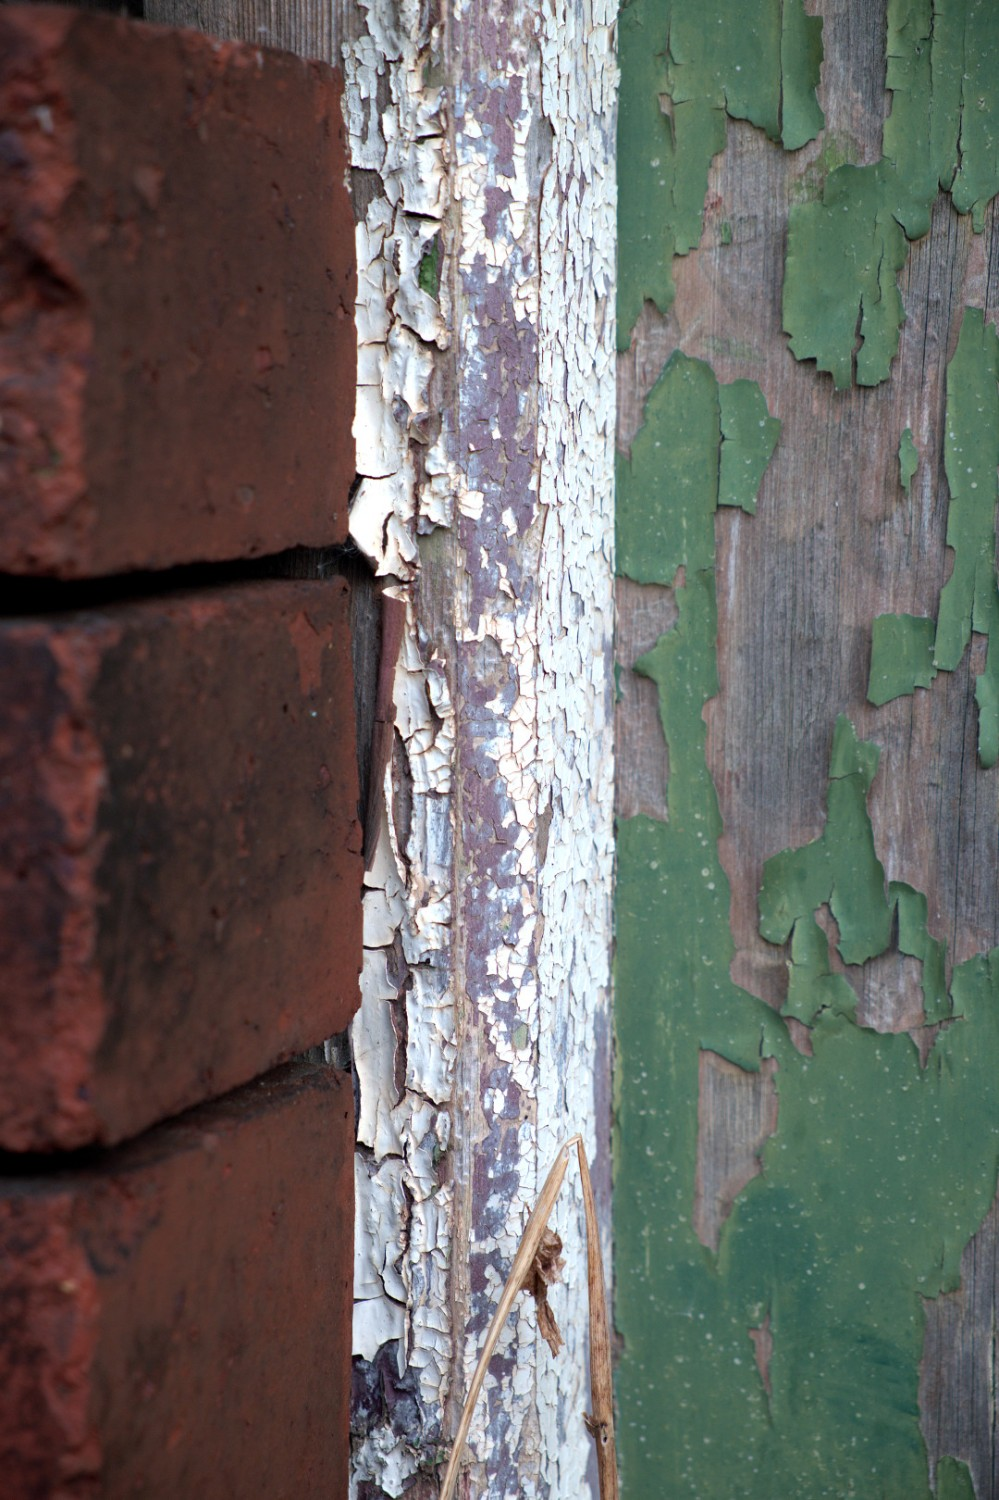 Green and White flaking paint